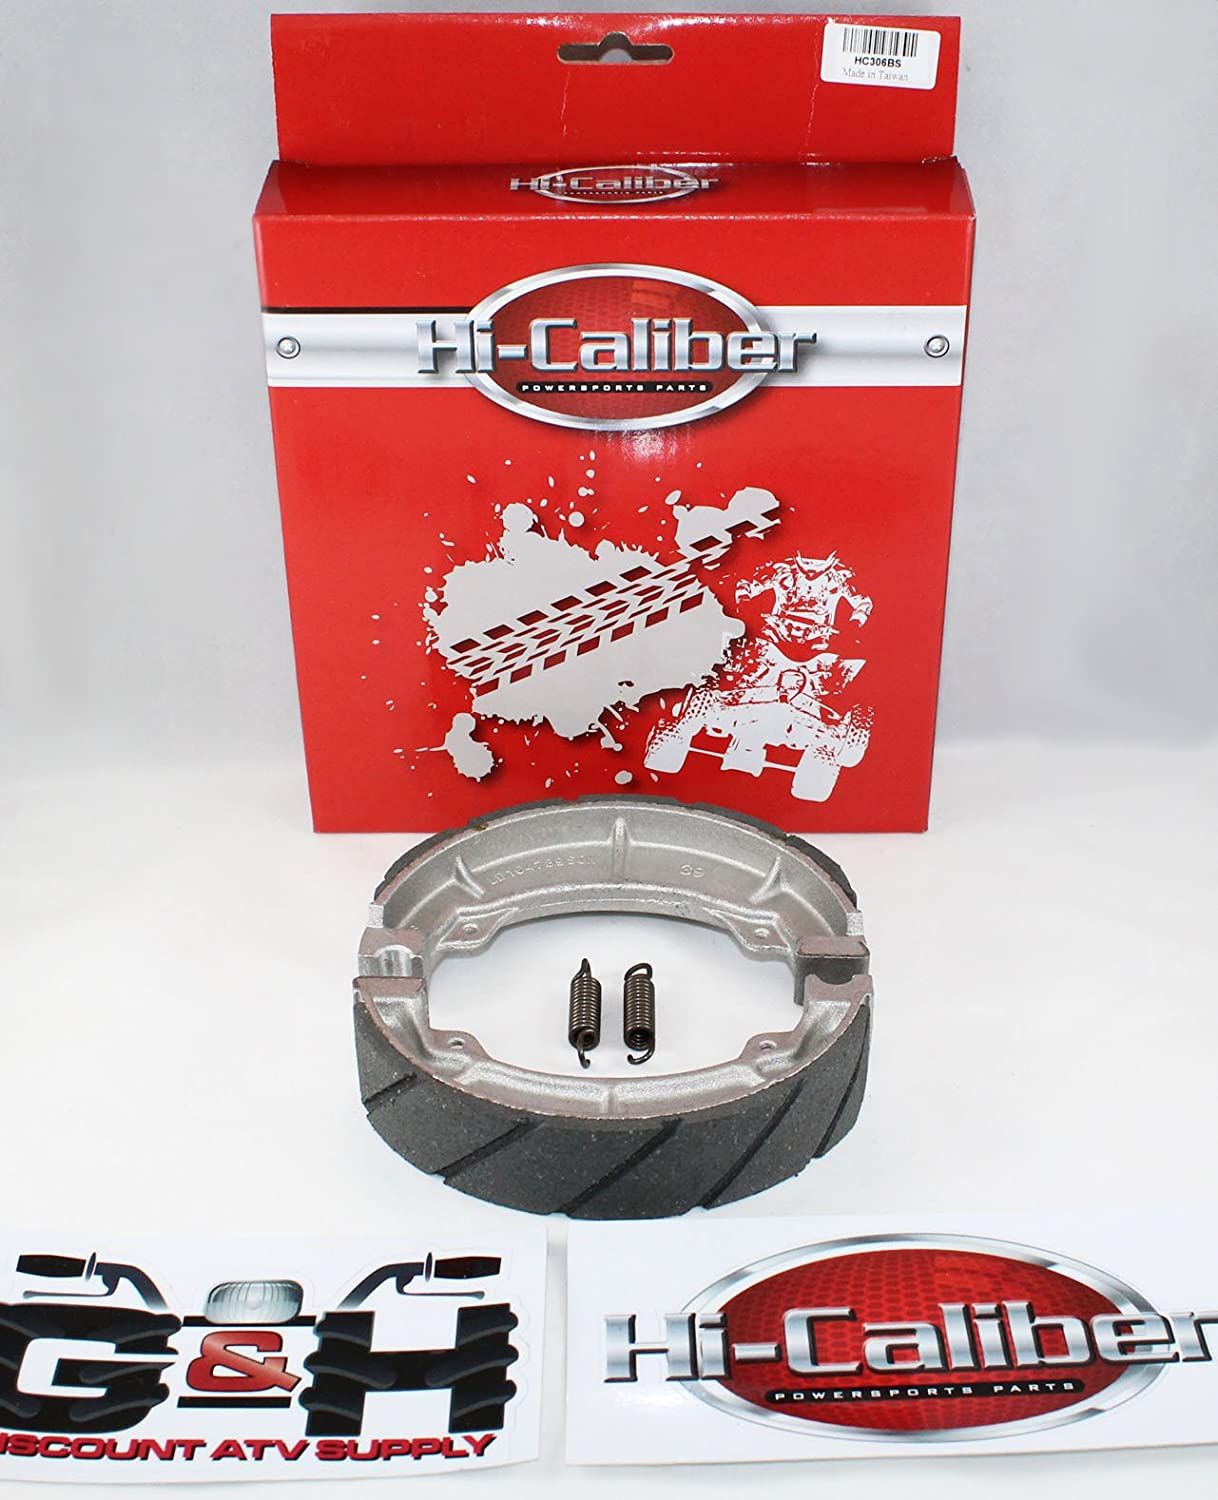 WATER GROOVED FRONT BRAKE SHOES & SPRINGS for the 85-87 Honda ATC 250 ES Big Red 250SX Hi-Caliber Powersports Parts